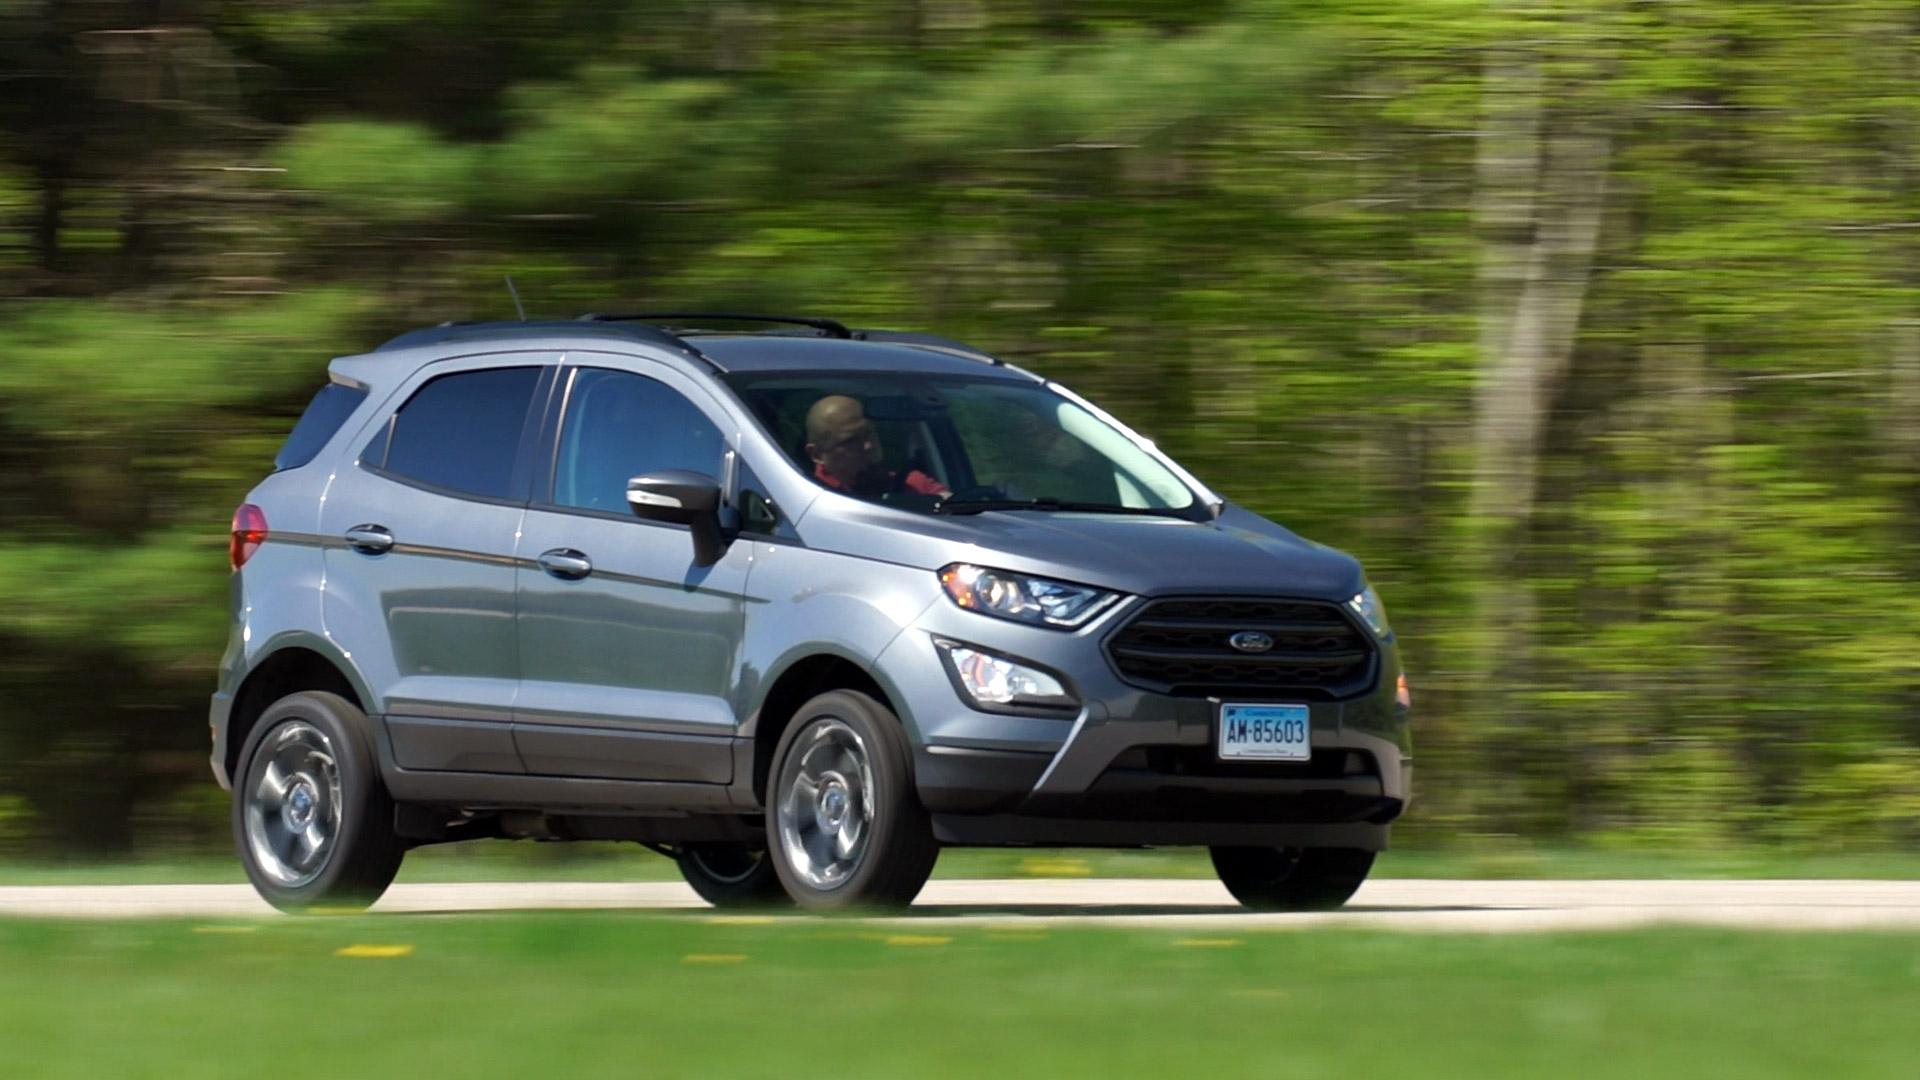 2019 Ford Ecosport Reviews Ratings Prices Consumer Reports